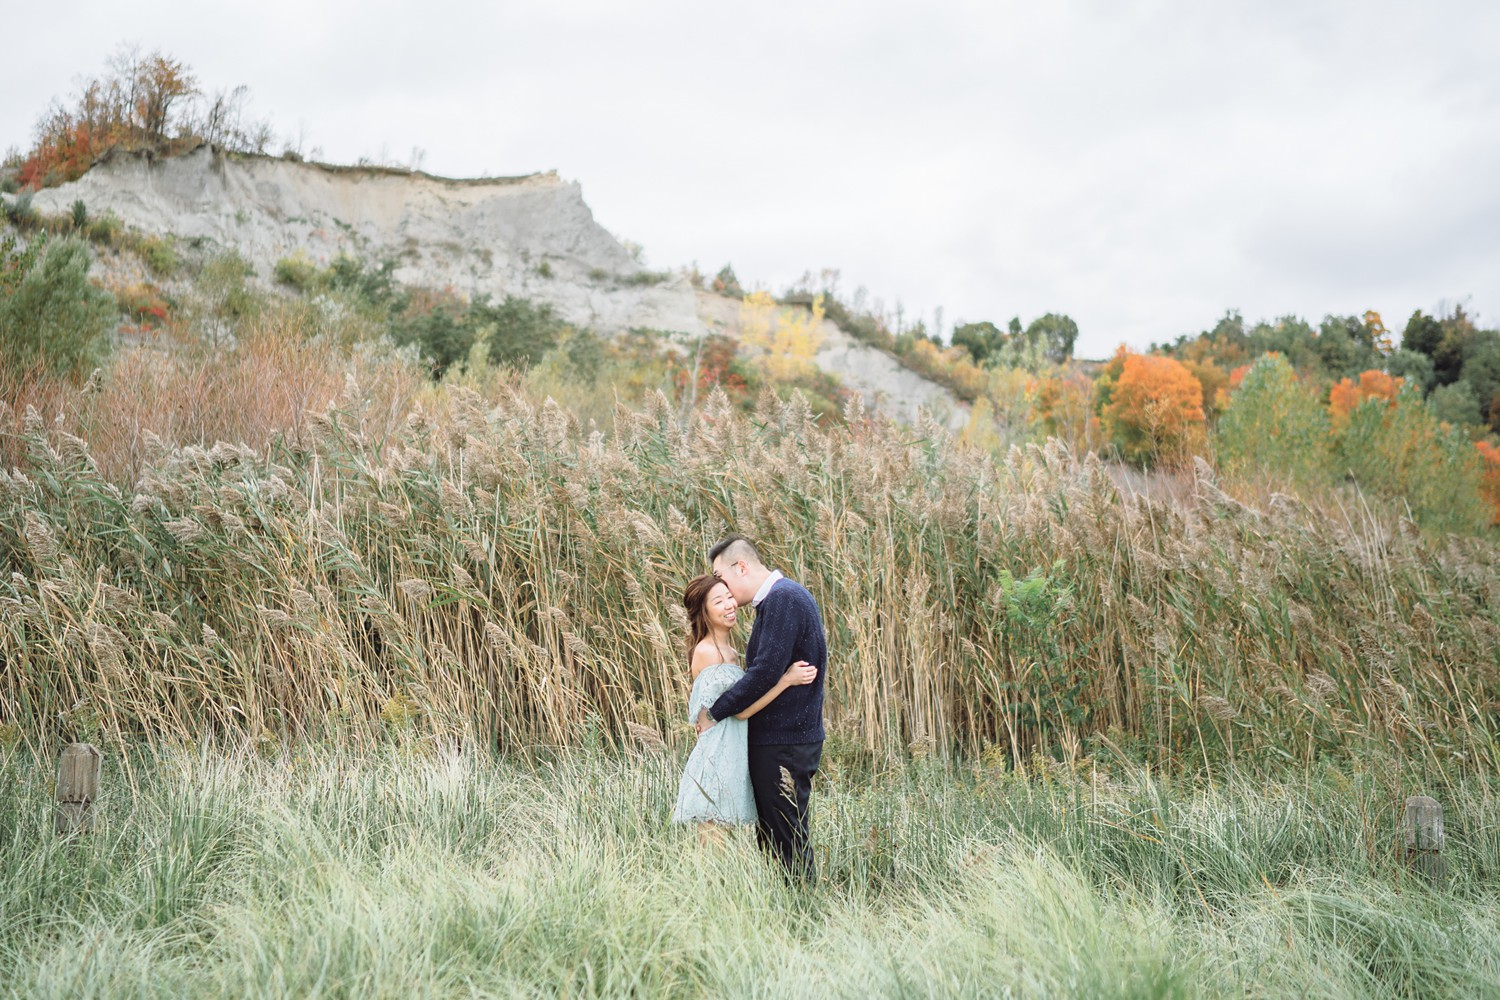 Tall_Grass_Scarborough_Bluffs_Beach_Fall_Toronto_Engagement_Photos-Rhythm_Photography